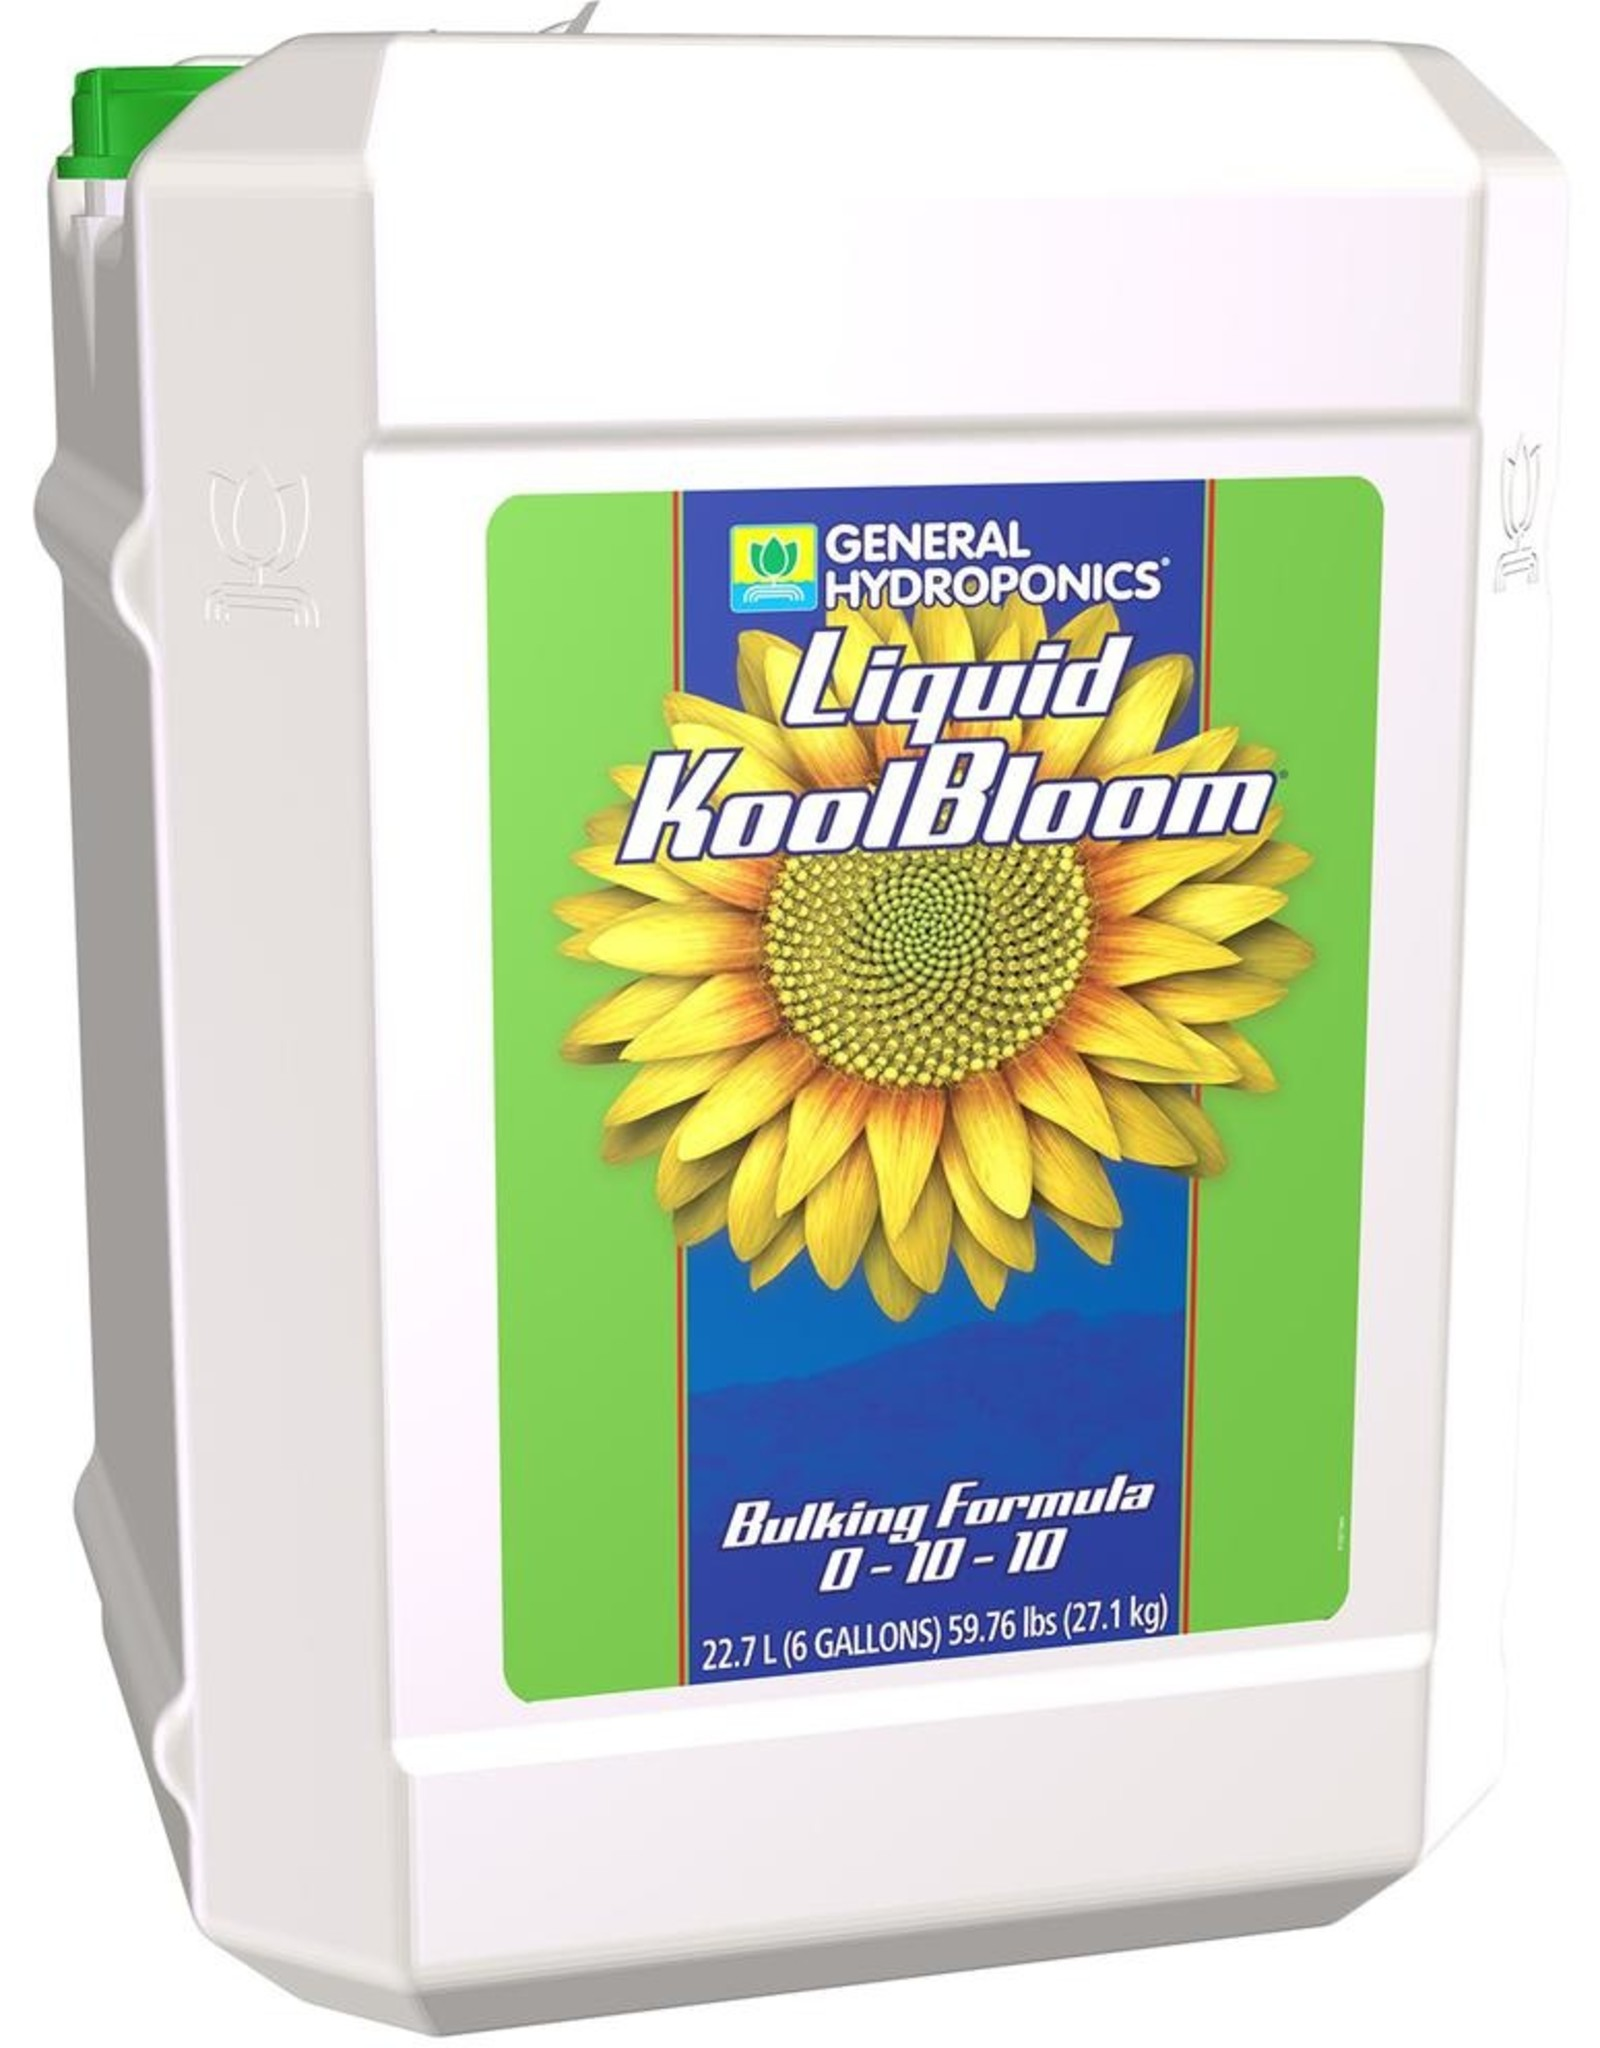 GENERAL HYDROPONICS Liquid KoolBloom® is a bulking agent that goes way beyond other bloom boosters. Enriched with stress-reducing vitamins and nutrient-transporting acids, it promotes heavy production of essential oils, fantastic flavors and increases fruiting and flower dev